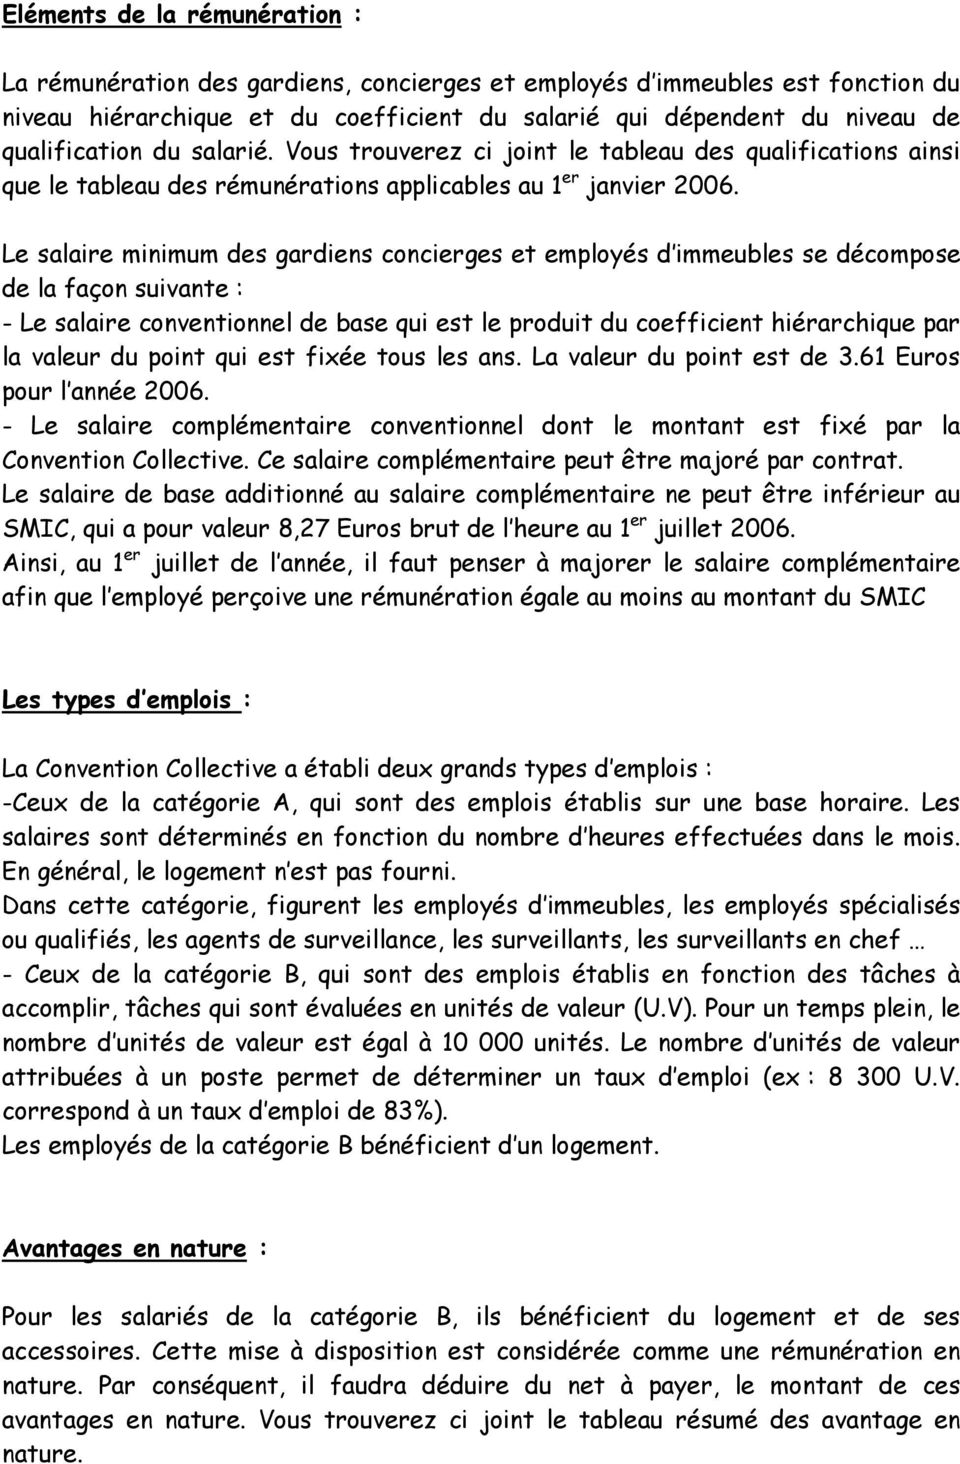 Le Bulletin De Salaire Pdf Free Download